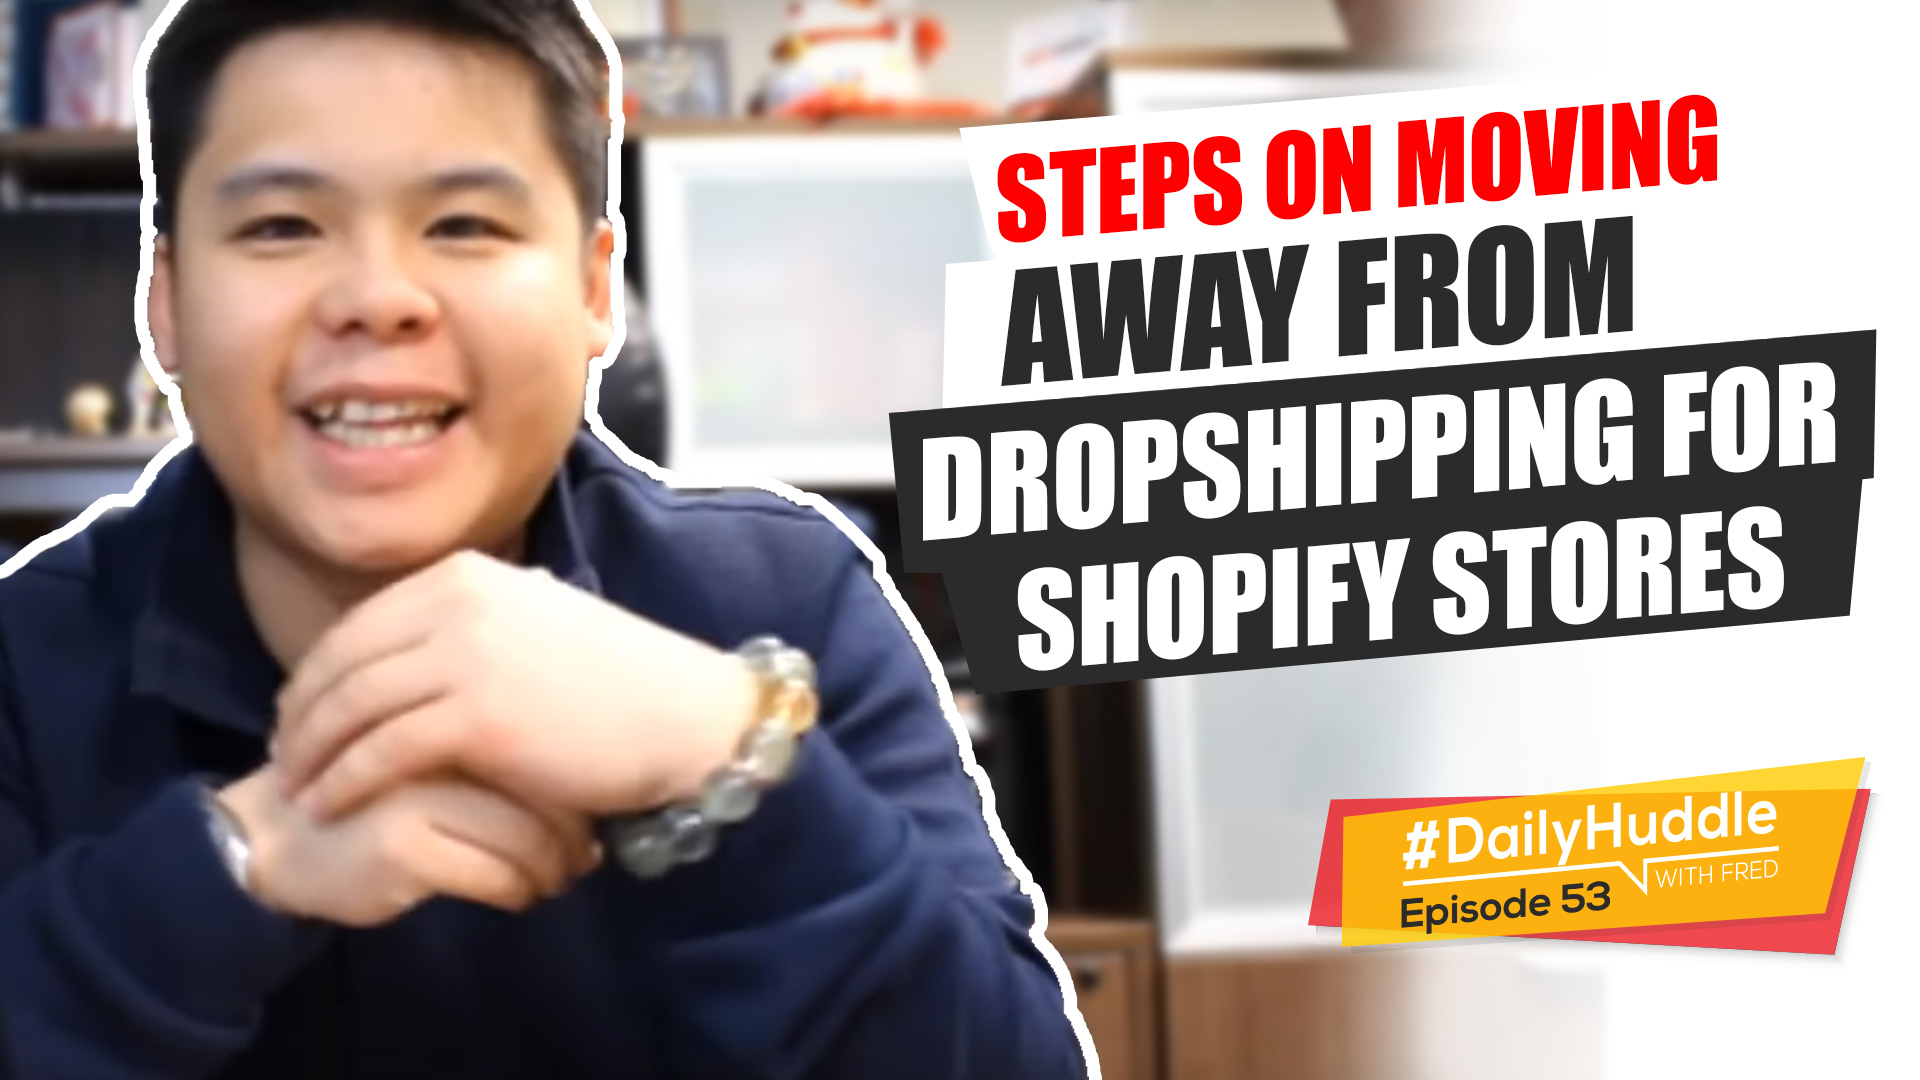 Daily Huddle - Ep 53 | Steps On Moving Away From Dropshipping For Shopify Stores